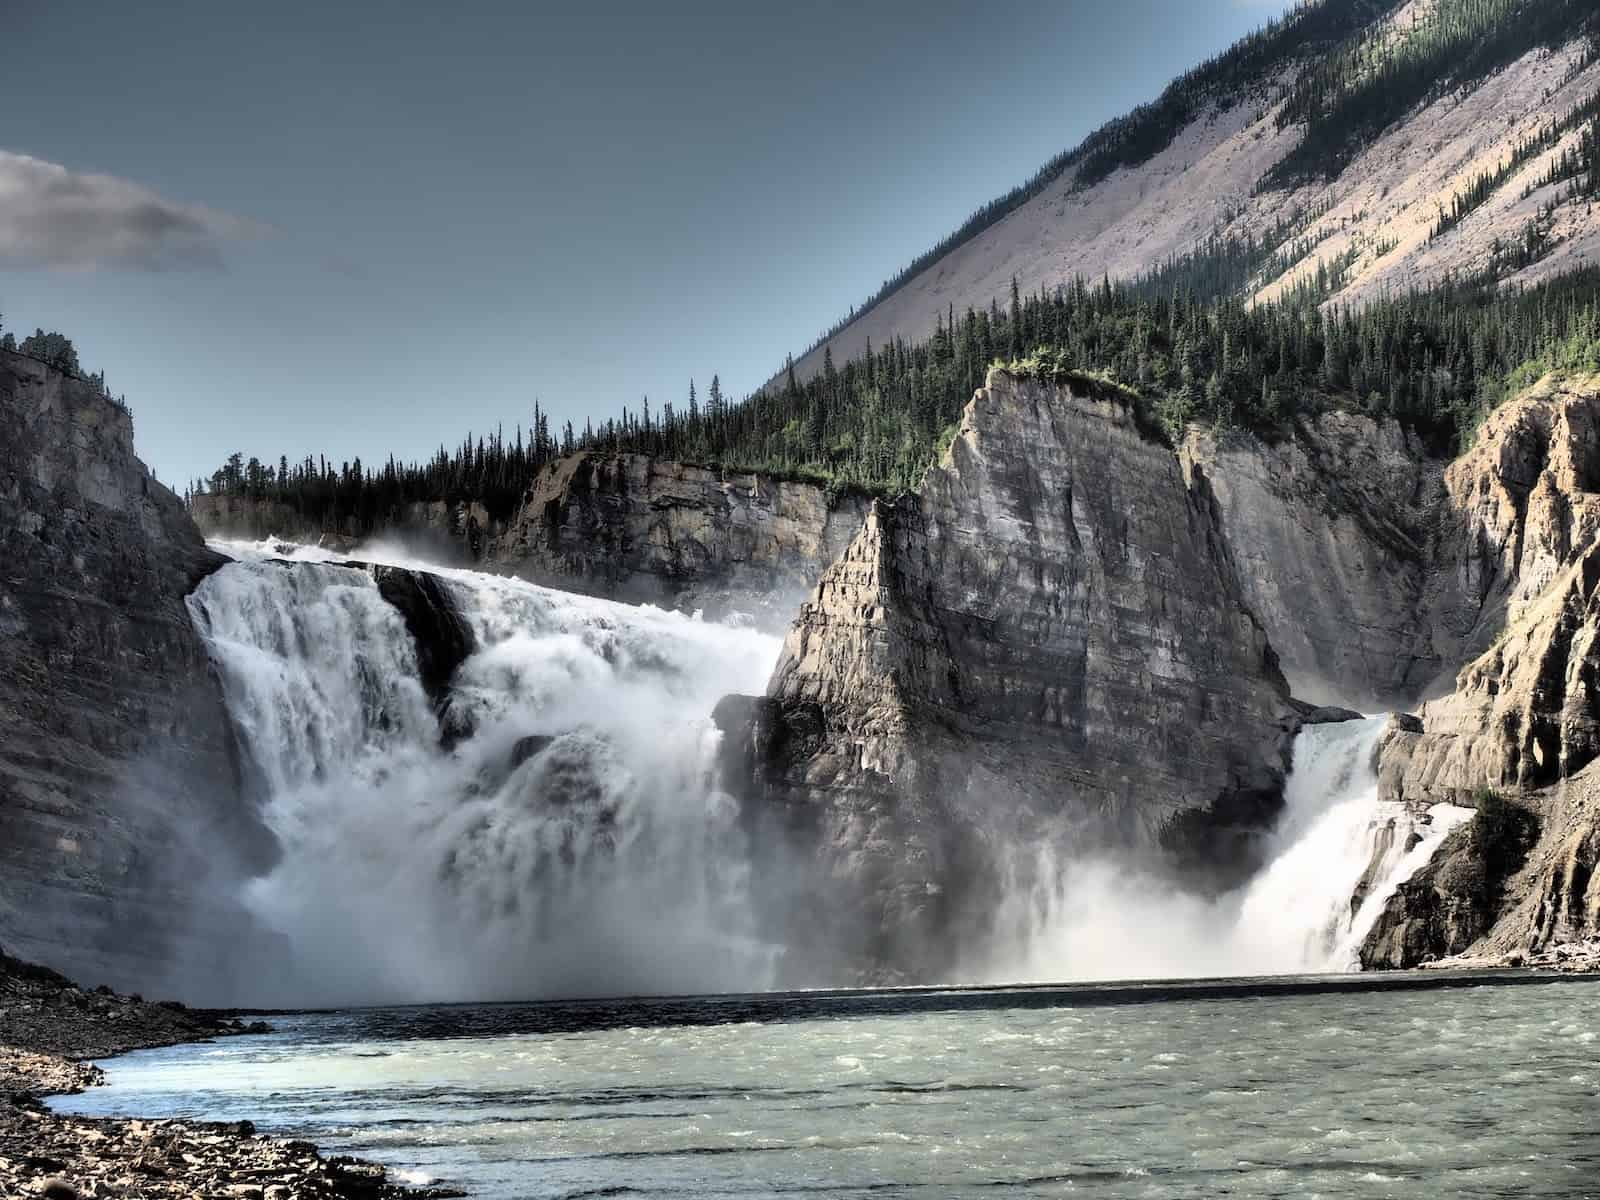 Nahanni River by Canoe: A final view of Virginia Falls